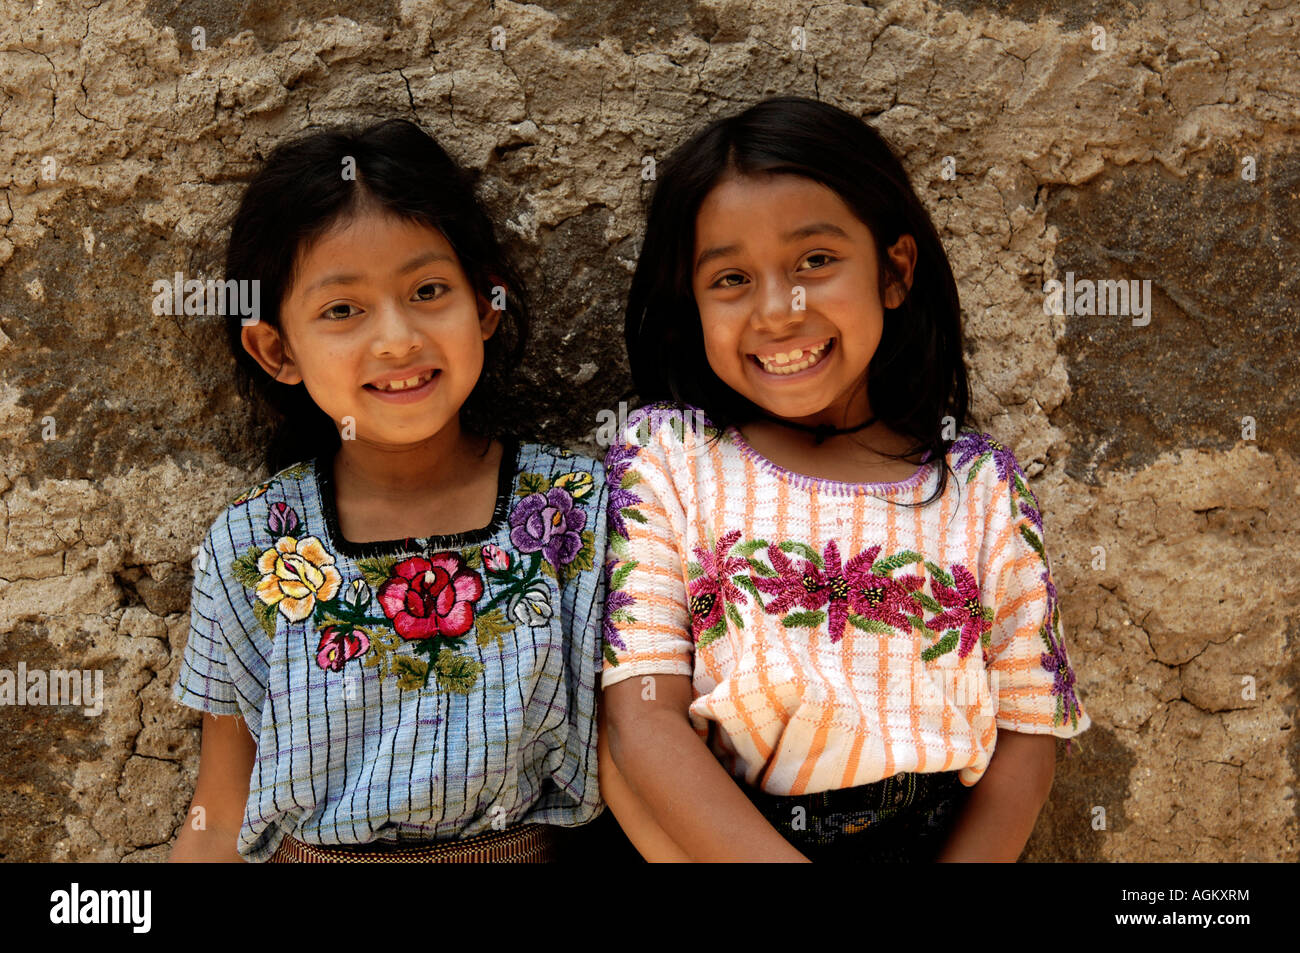 Guatemala, Santiago Atitlan, Portrait of two smiling girls. - Stock Image